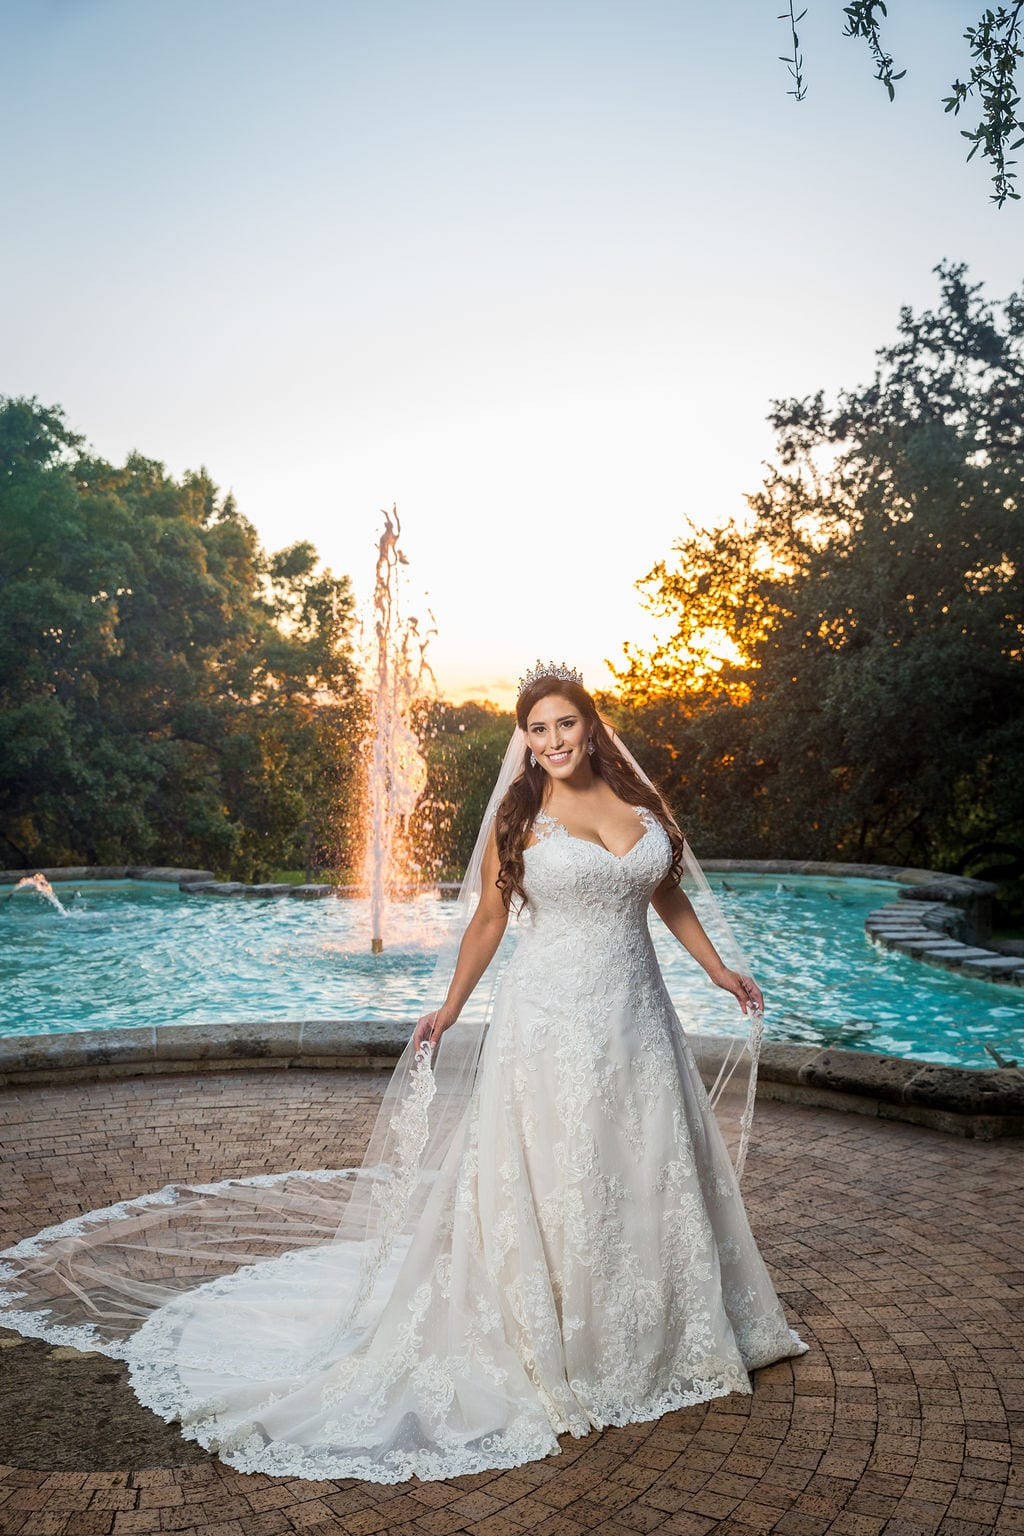 Mary Elizabeth's bridal at the McNay the fountain holding veil